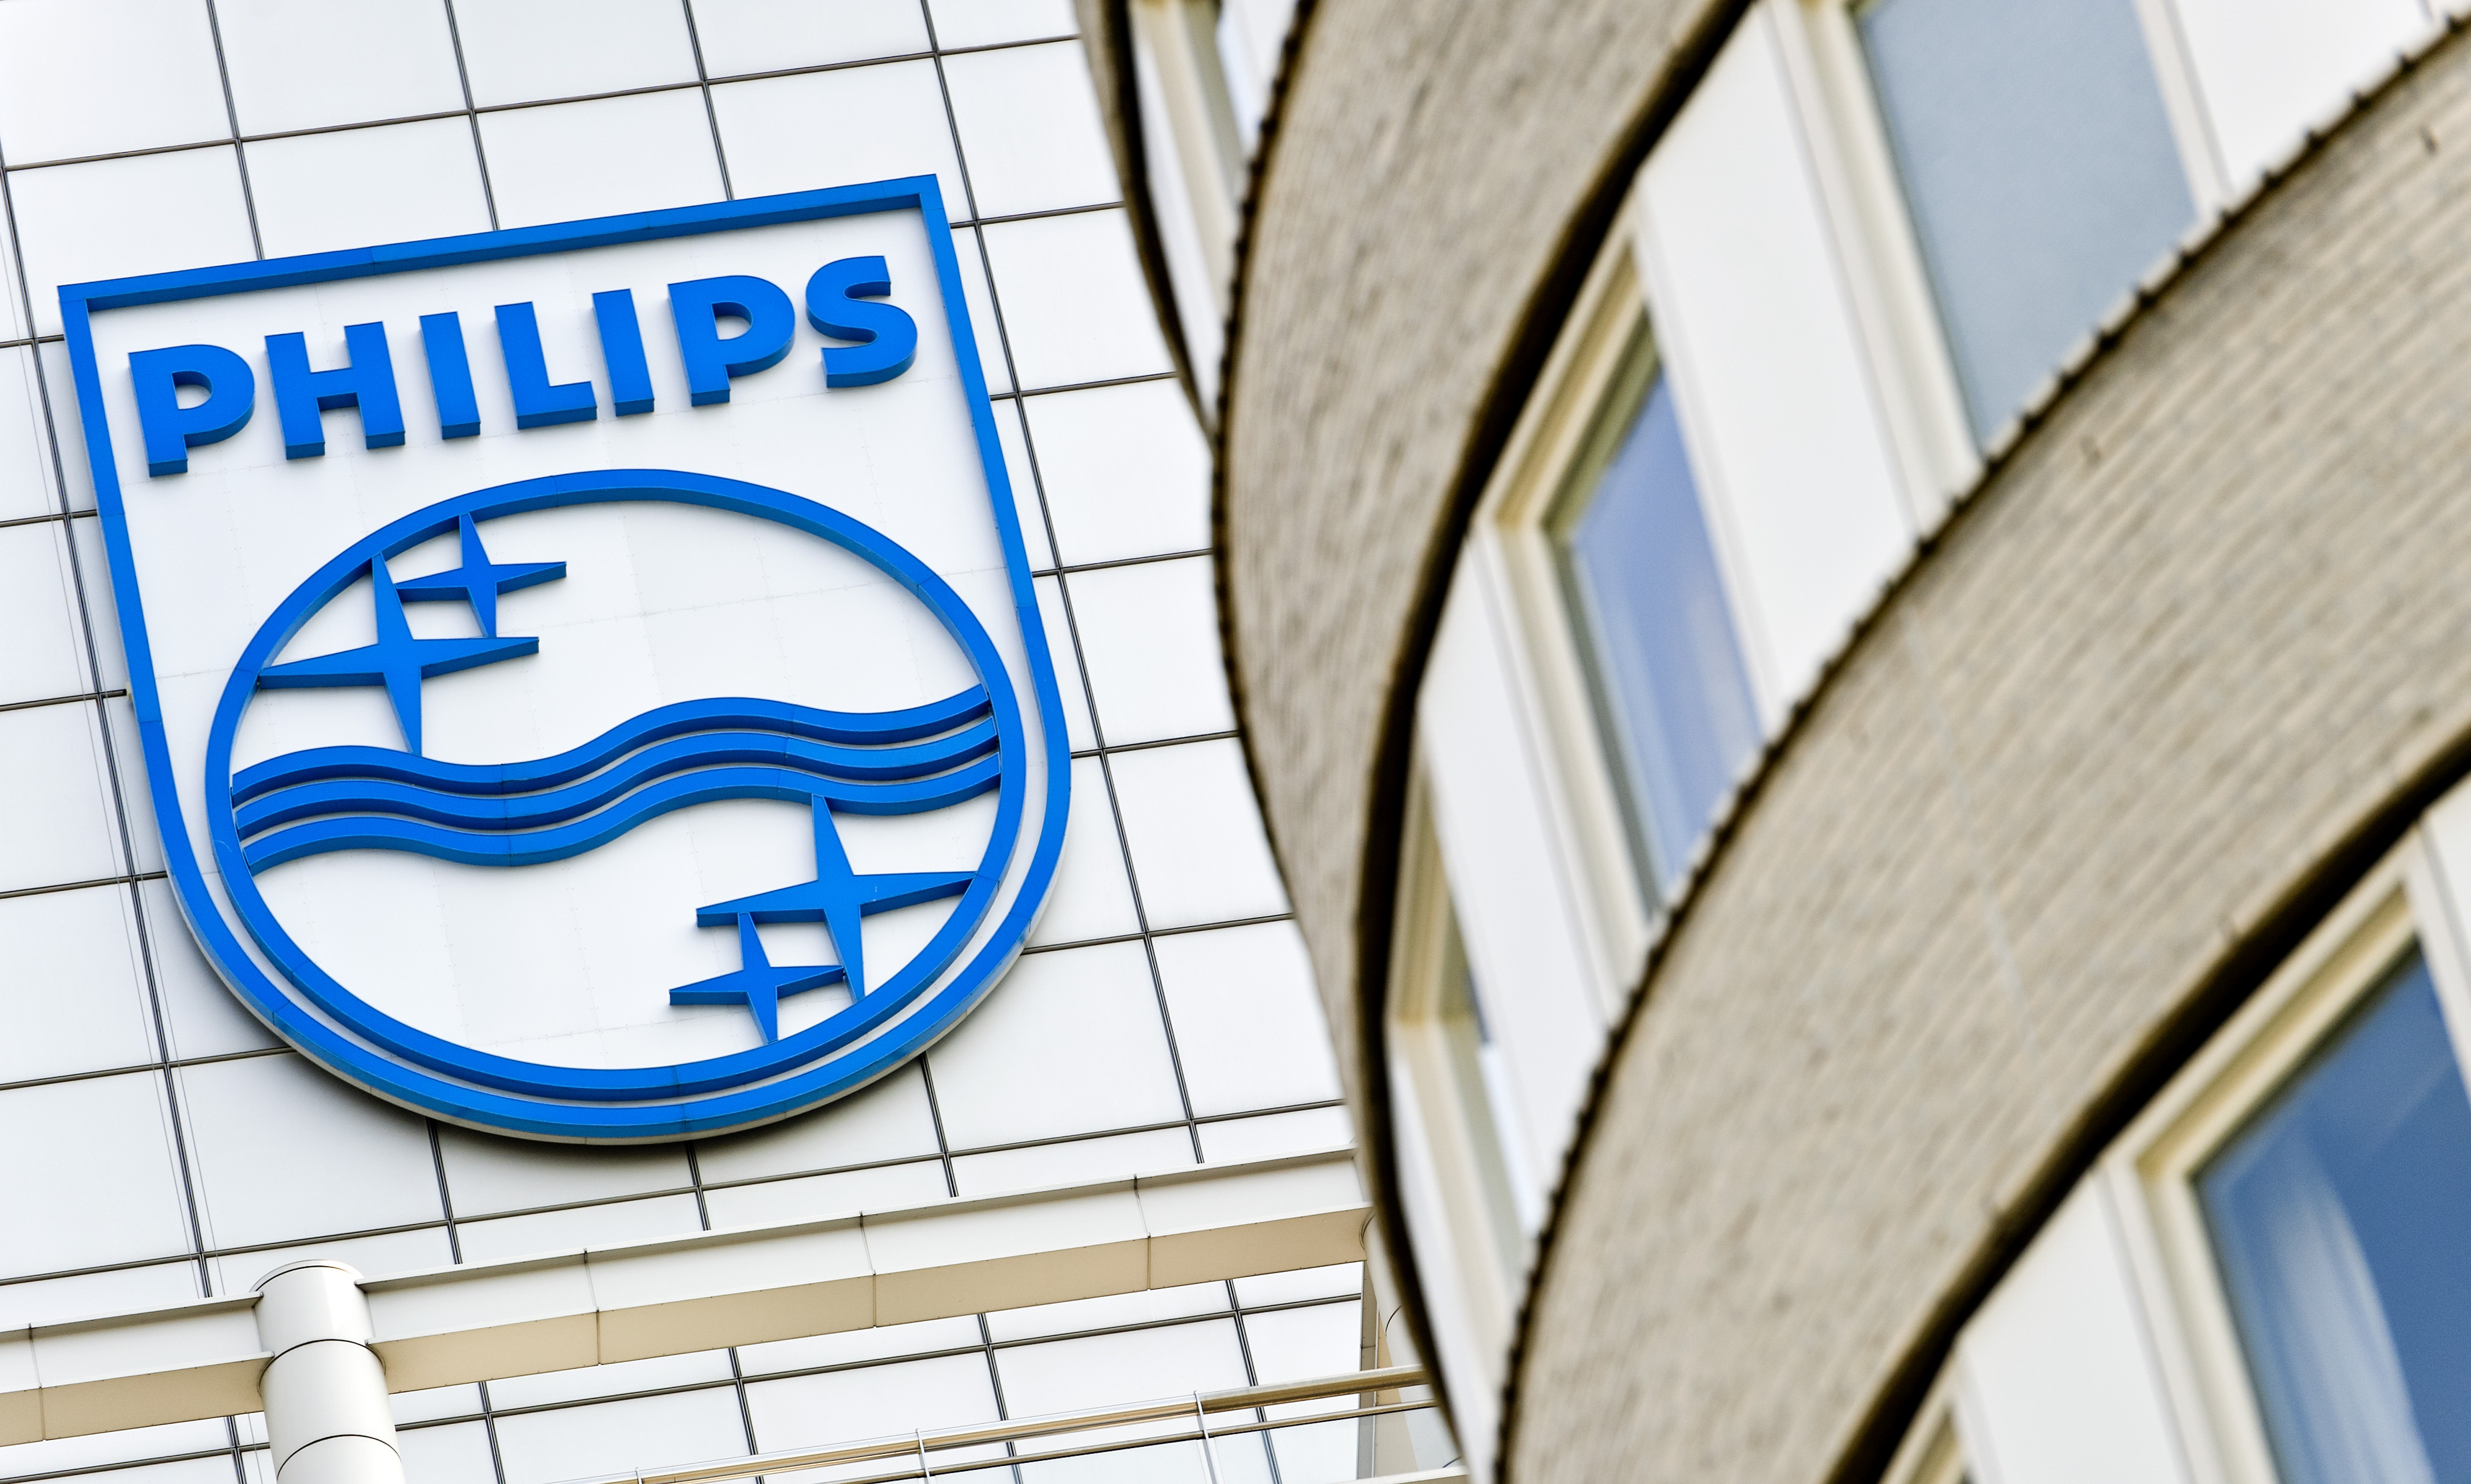 Healthcare giant Philips issues profit warning on US-China trade tariffs